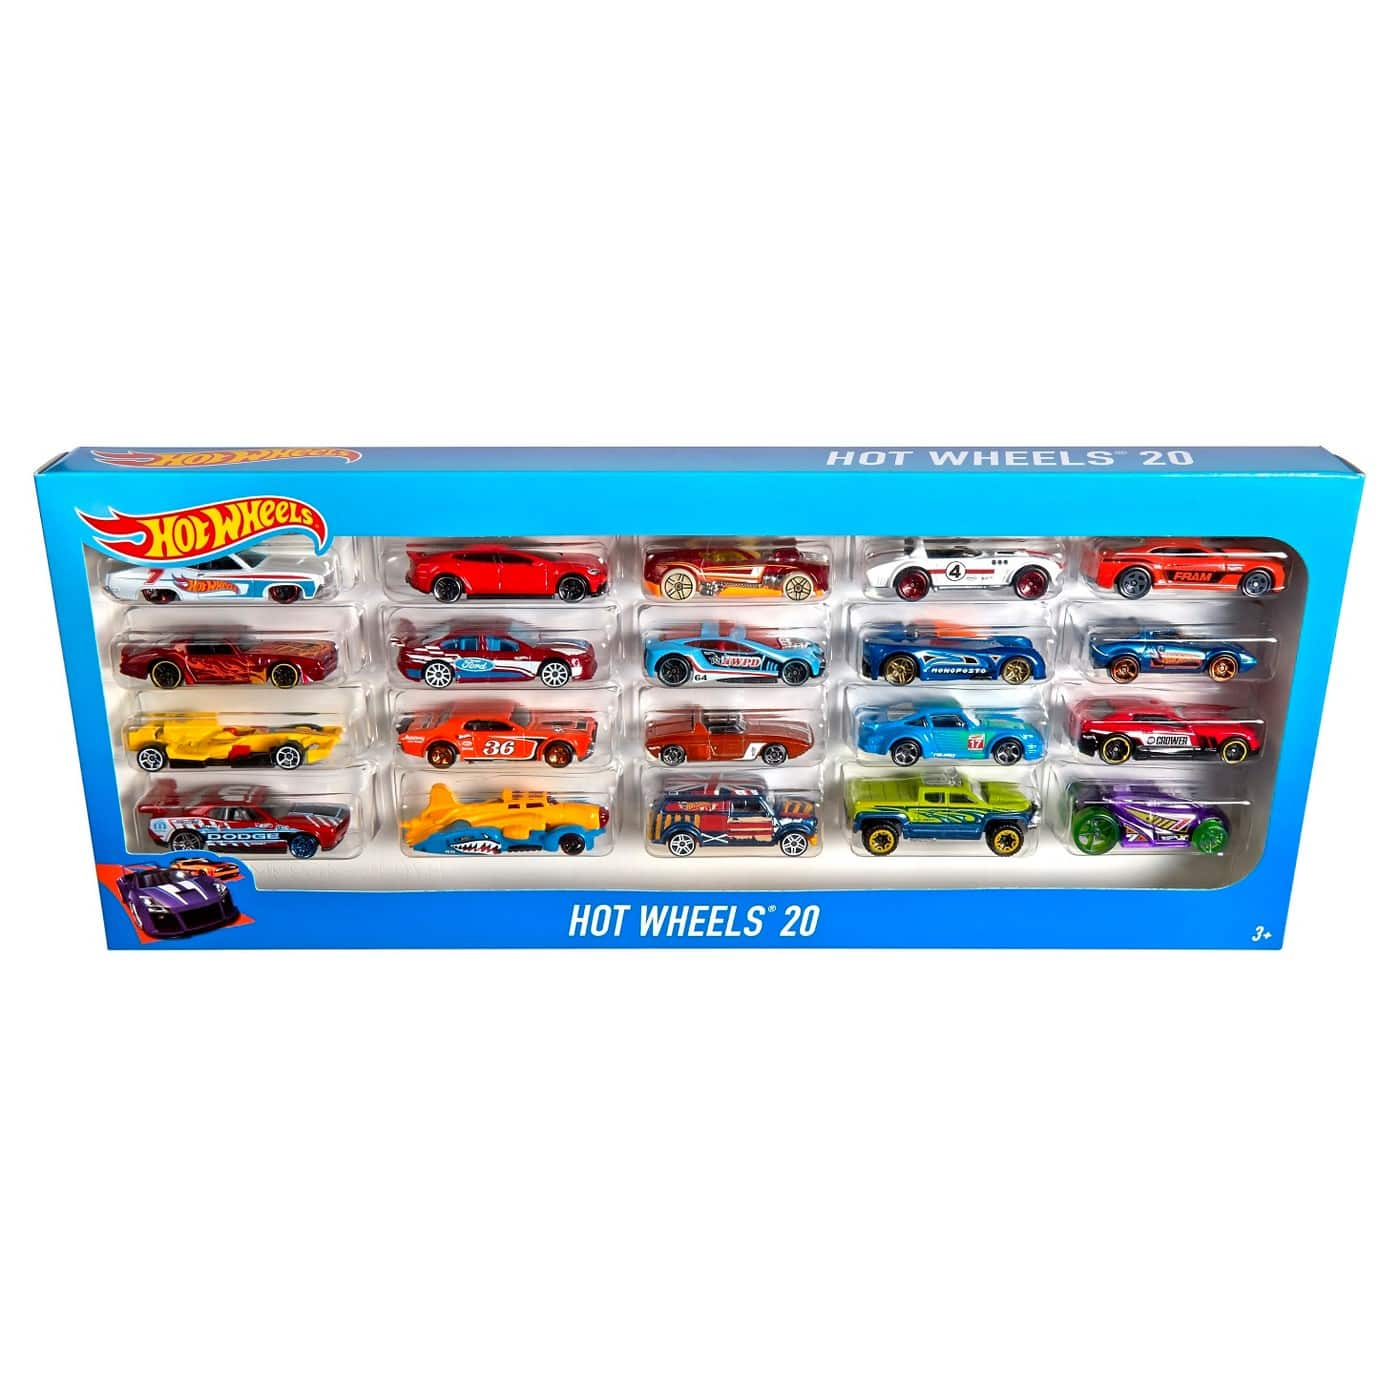 Hot Wheels 20 pack $14.39 @ Amazon, prime eligible